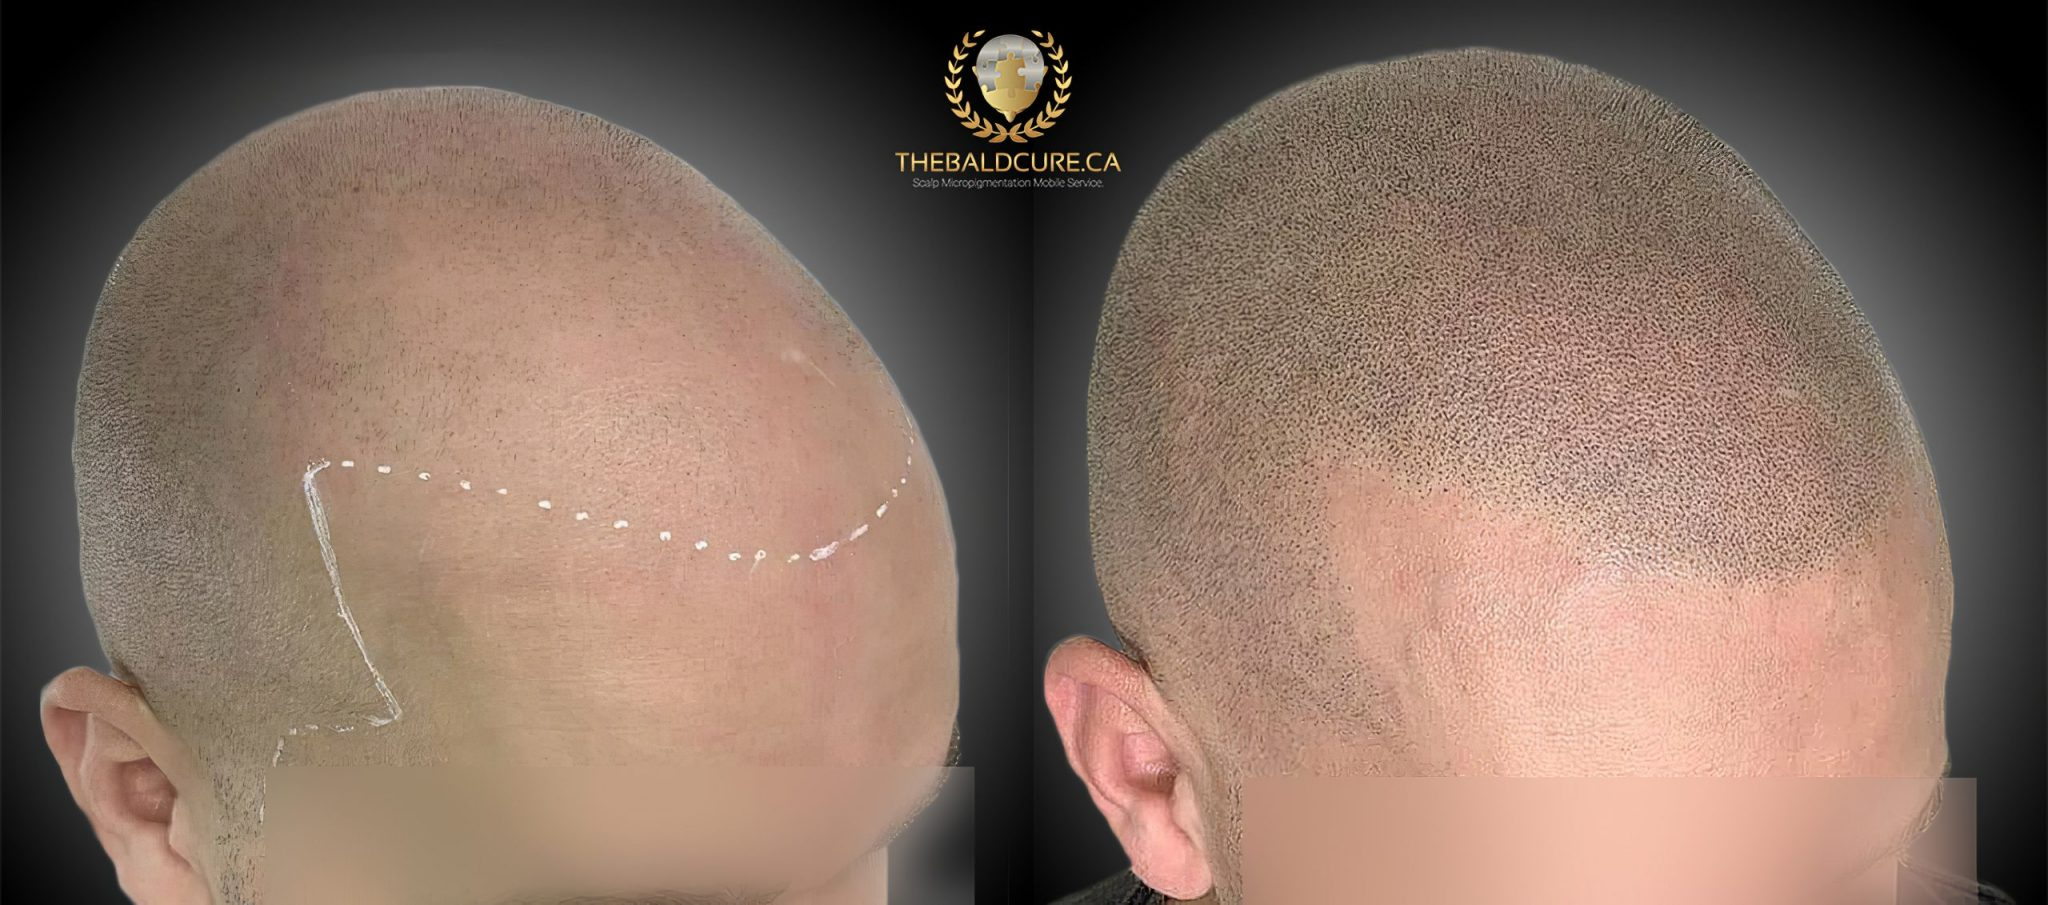 The Bald Cure Mobile Service In The Comfort Of Your Home We Beat Any Price 1-high-res-scaled Services & Pricing